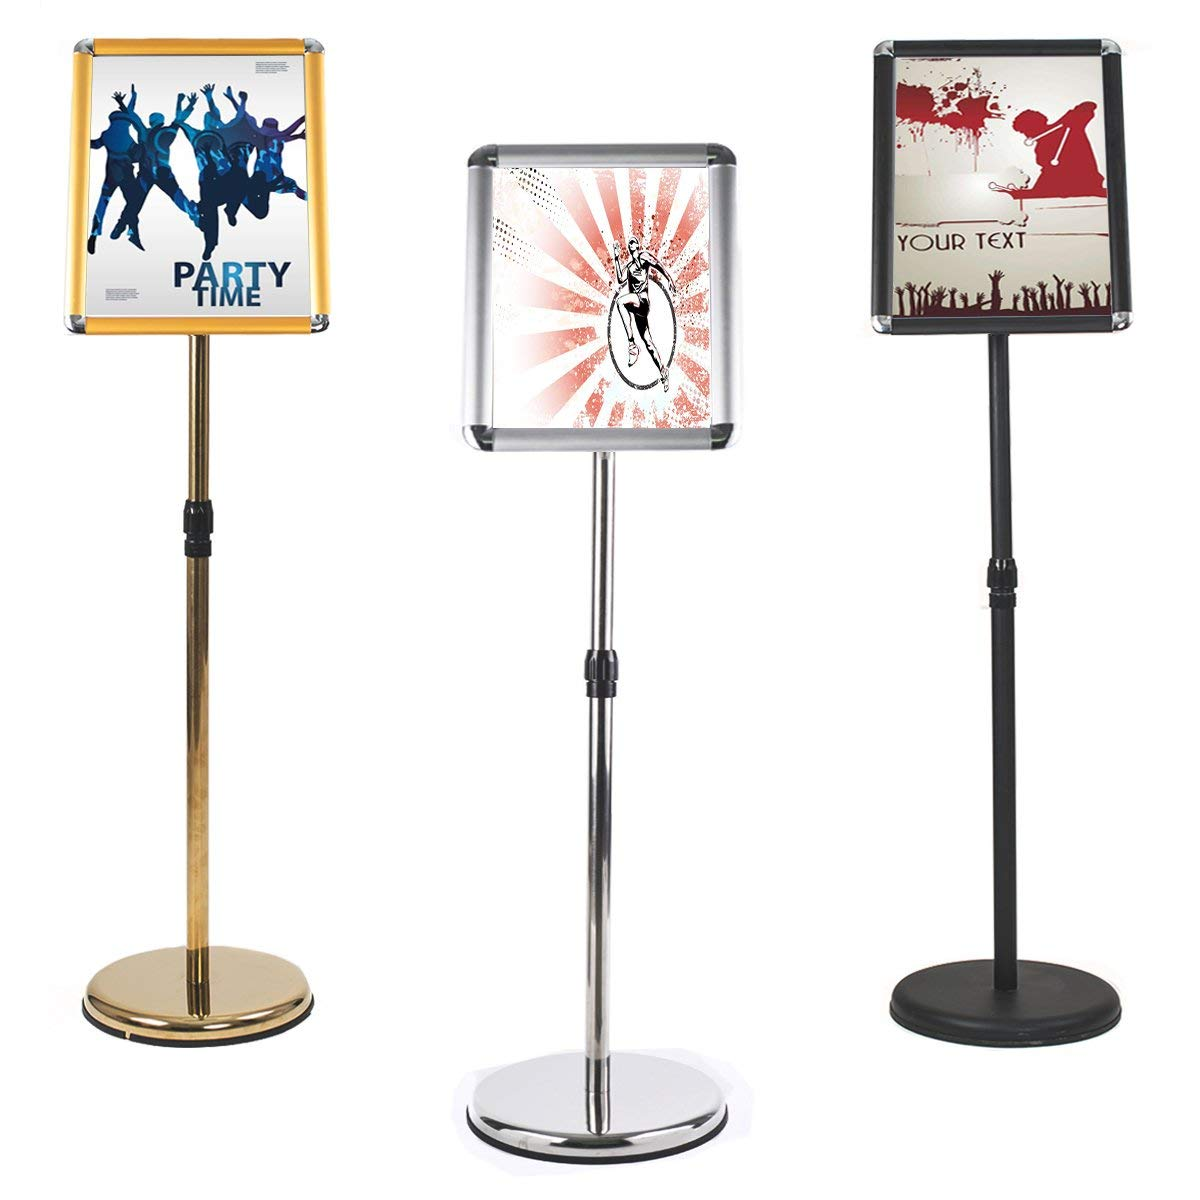 Adjustable Stainless Steel Pedestal Sign Holder Poster Stand Aluminum Easy Snap Open Frame for Graphics Both Vertical and Horizontal View Sign Displayed Menu Holder (Silver, 8.27 x 11.7 inches)